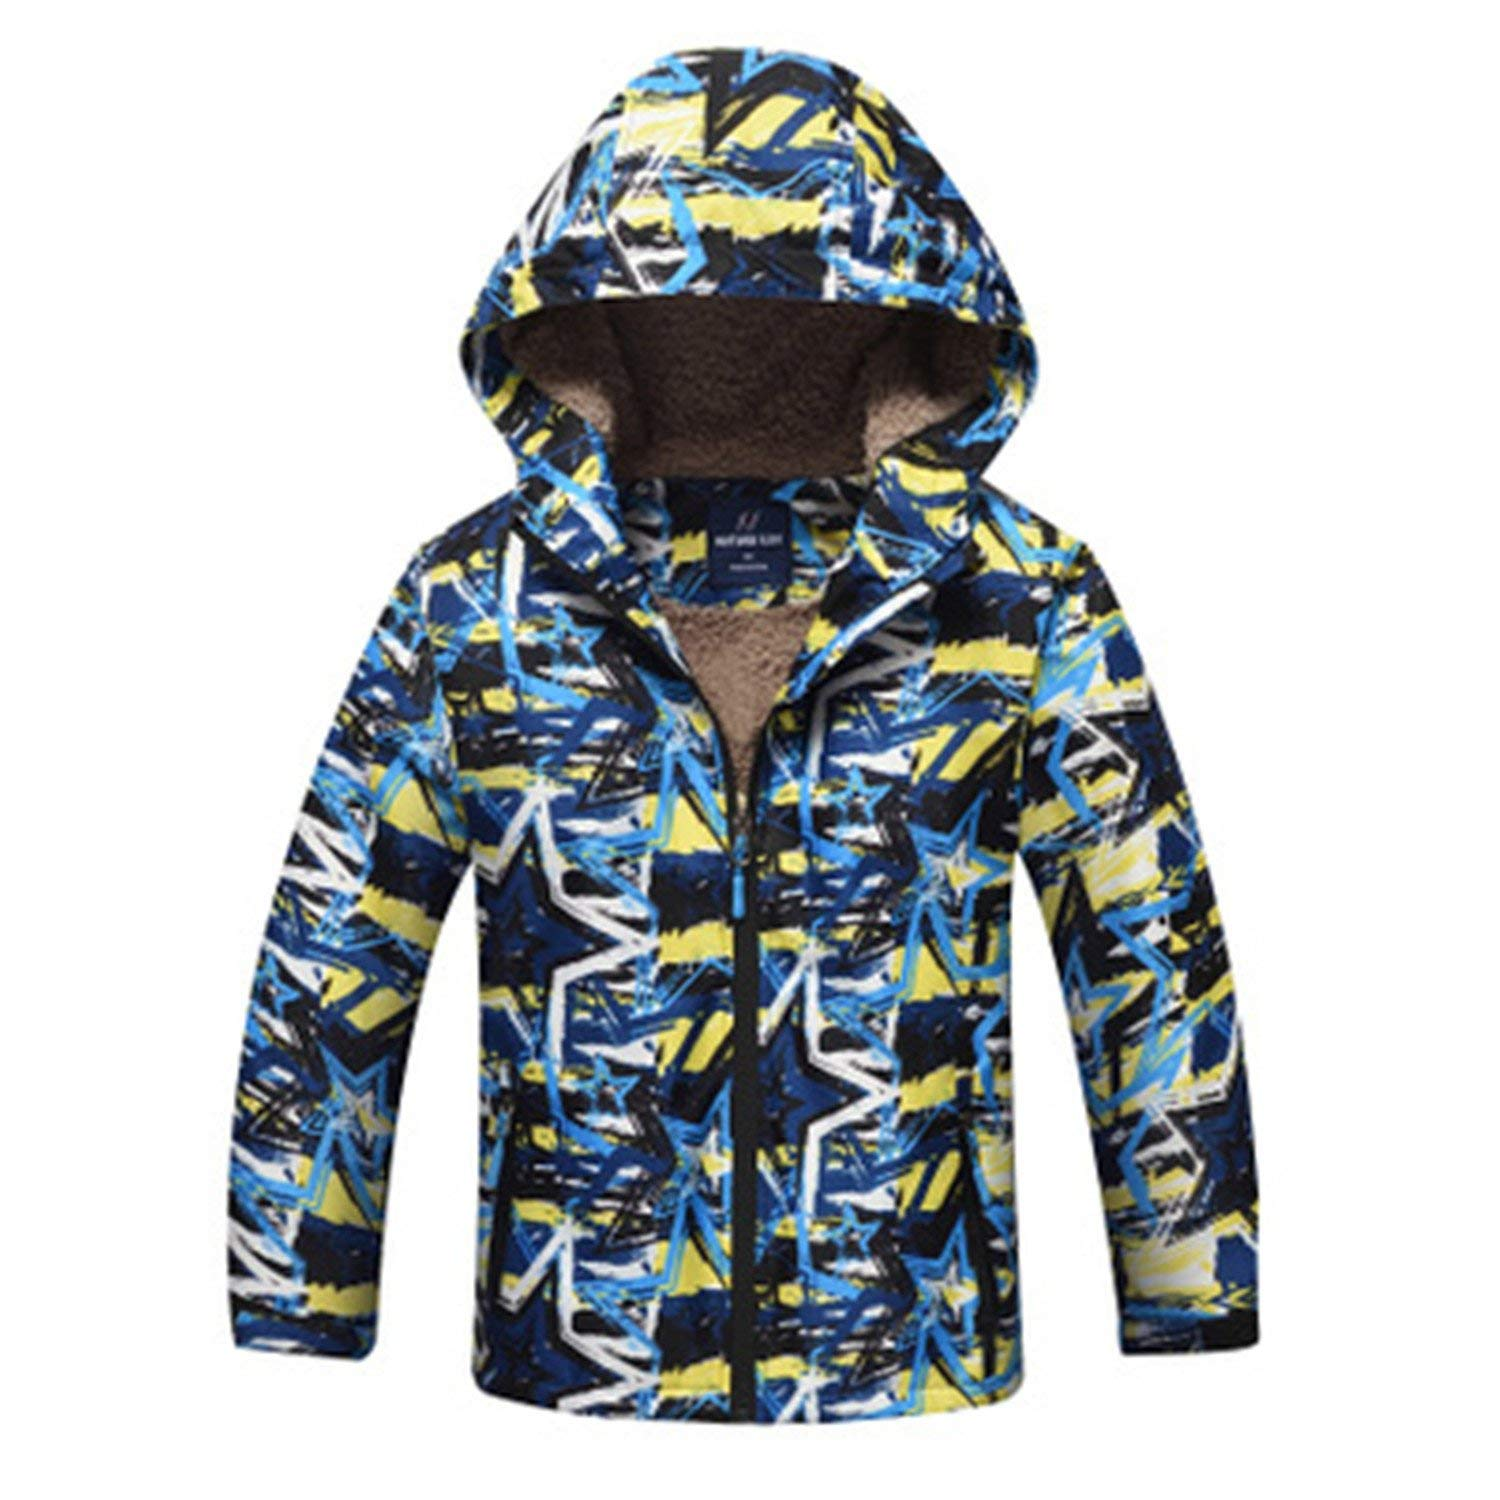 Daniel Galsworthy Kids Toddler Boy Jacket Coat Spring Autumn Hooded Windbreaker Outfits